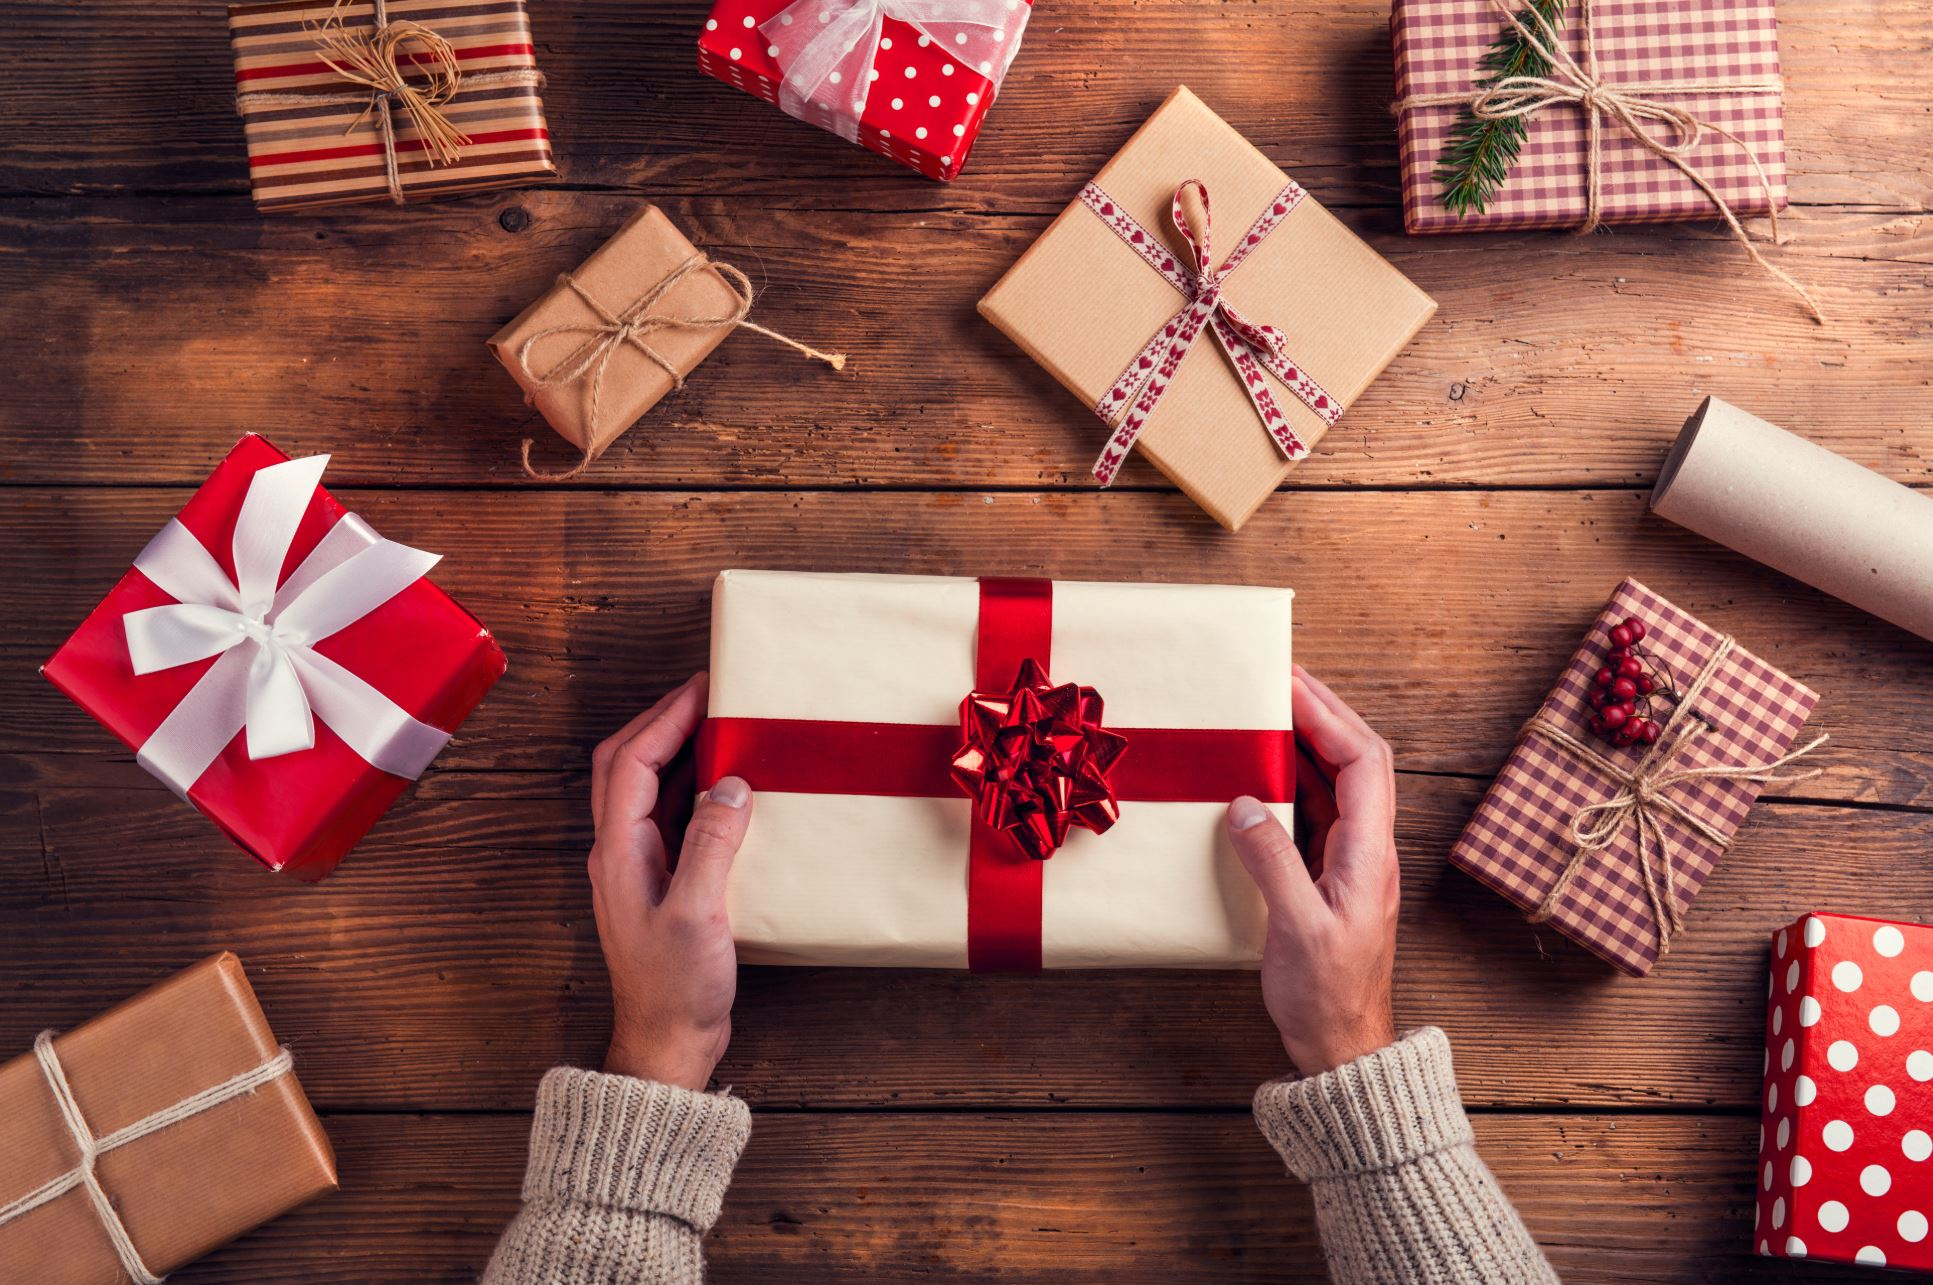 4 Tips to Survive the 2018 Holiday Season